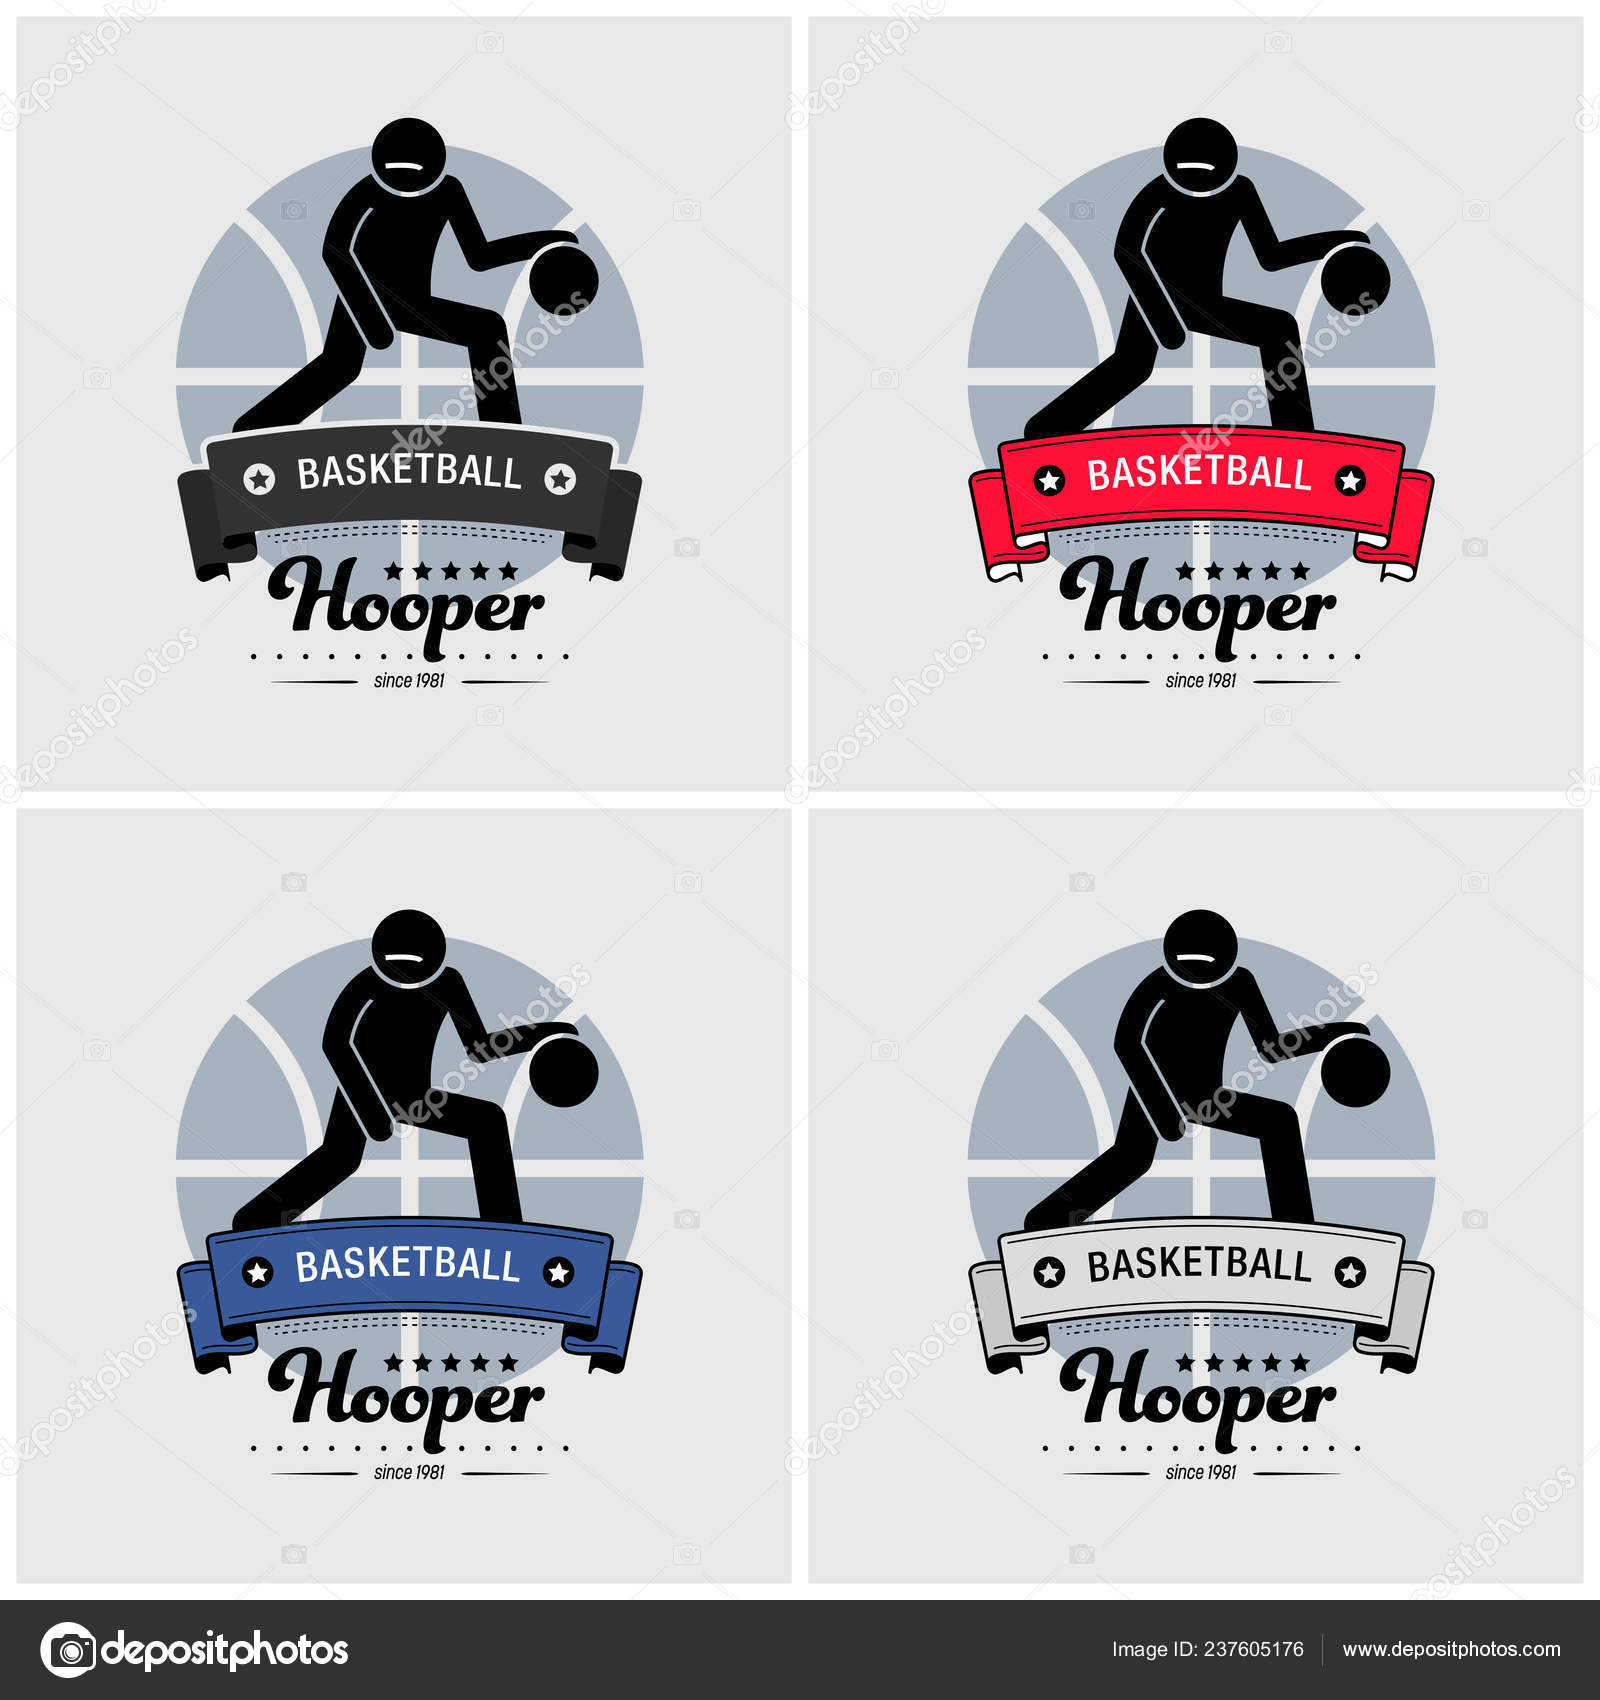 fa908c3e11c Depositphotos stock illustration basketball club logo design vector jpg  1600x1700 Illustration nike basketball clipart logo design